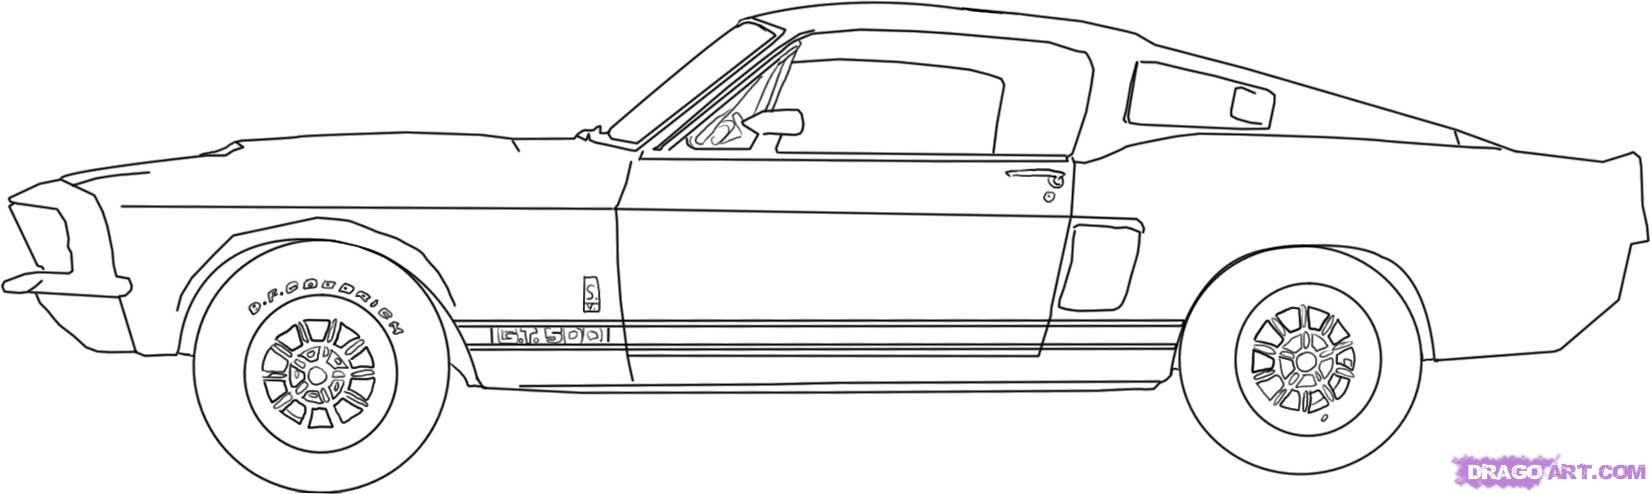 How to draw the Shelby Mustang GT500 car of 1967 with a pencil step by step